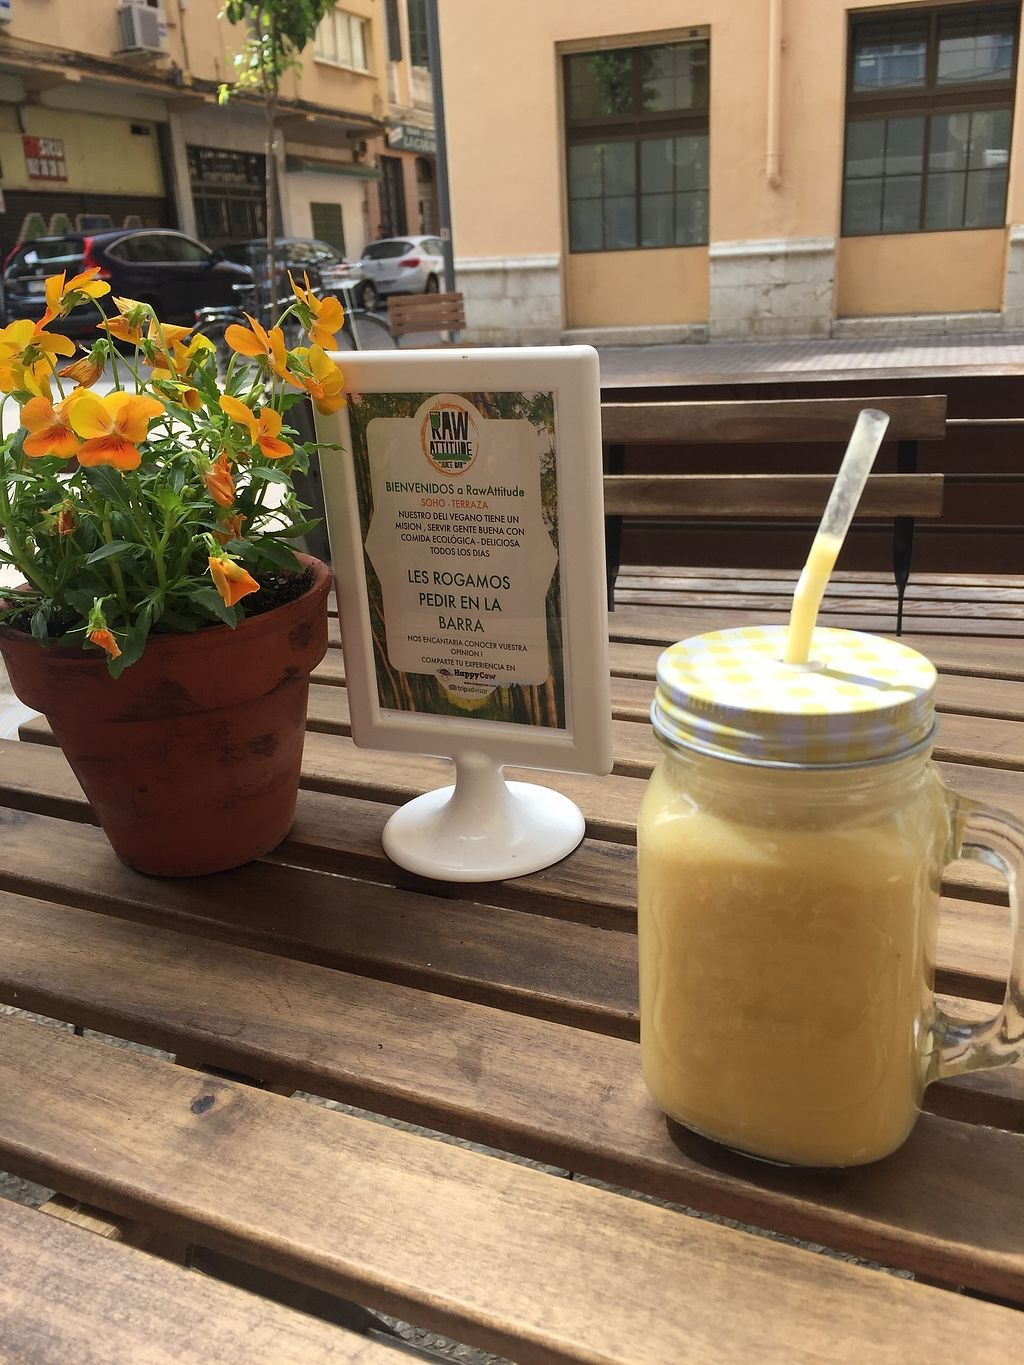 "Photo of RawAttitude  by <a href=""/members/profile/small_trees"">small_trees</a> <br/>Delicious smoothie  <br/> July 17, 2017  - <a href='/contact/abuse/image/80893/281339'>Report</a>"